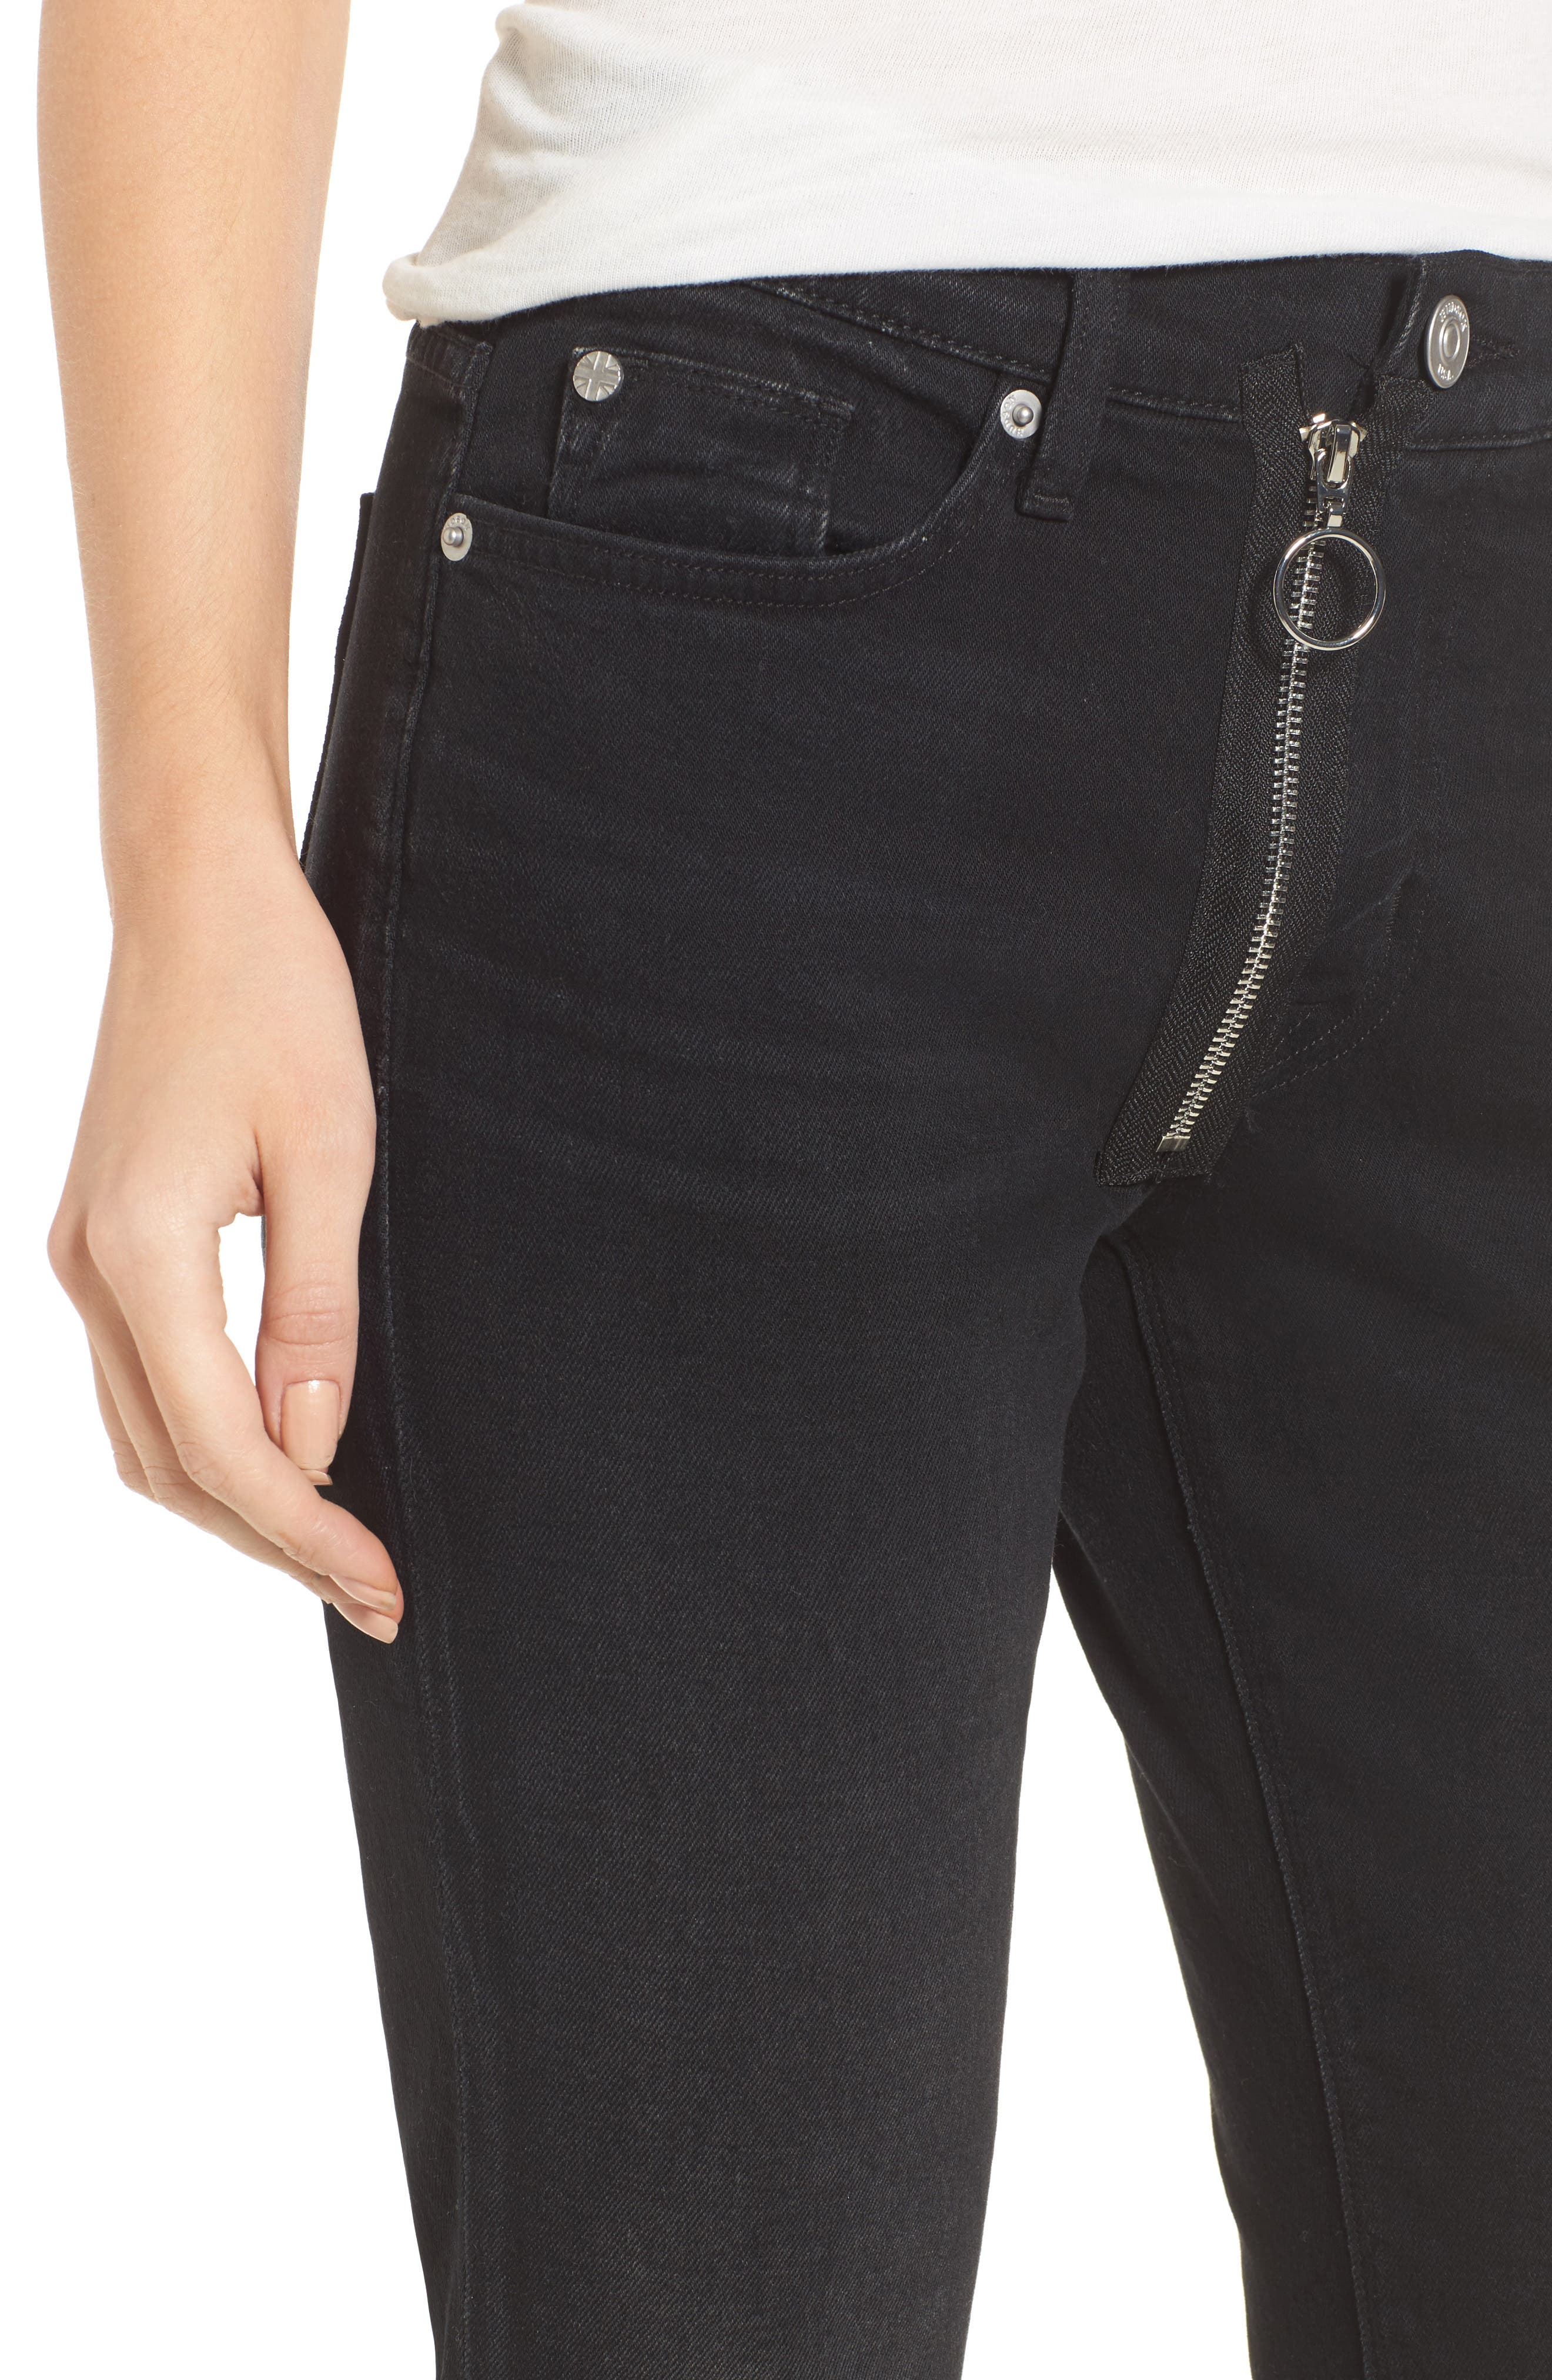 Riley Relaxed Straight Fit Jeans,                             Alternate thumbnail 4, color,                             Low Brow